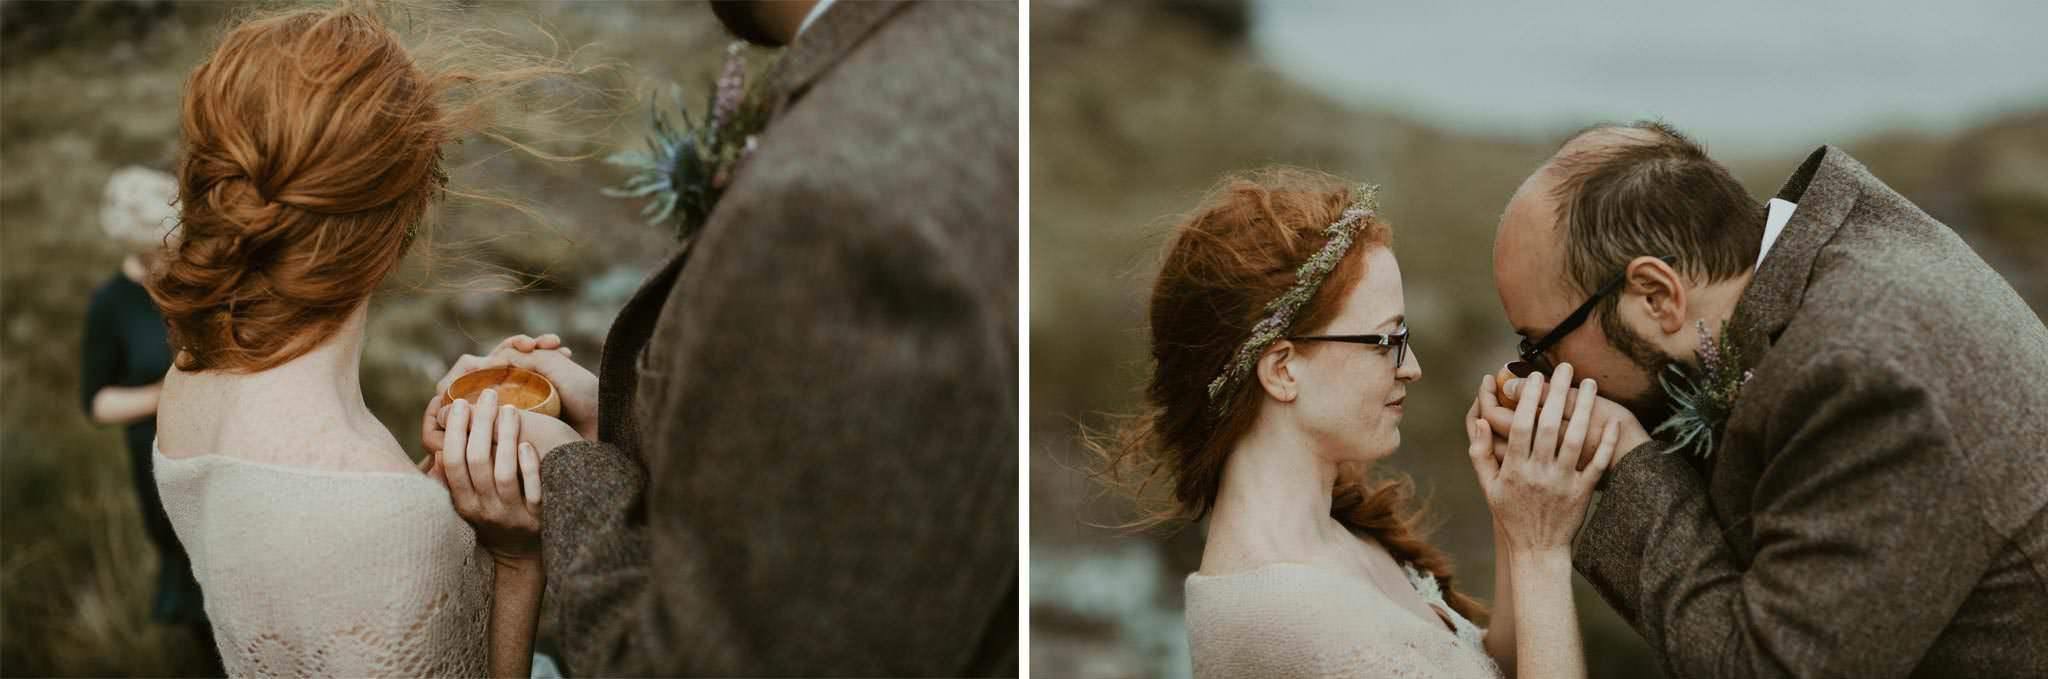 isle-of-skye-elopement-wedding-055